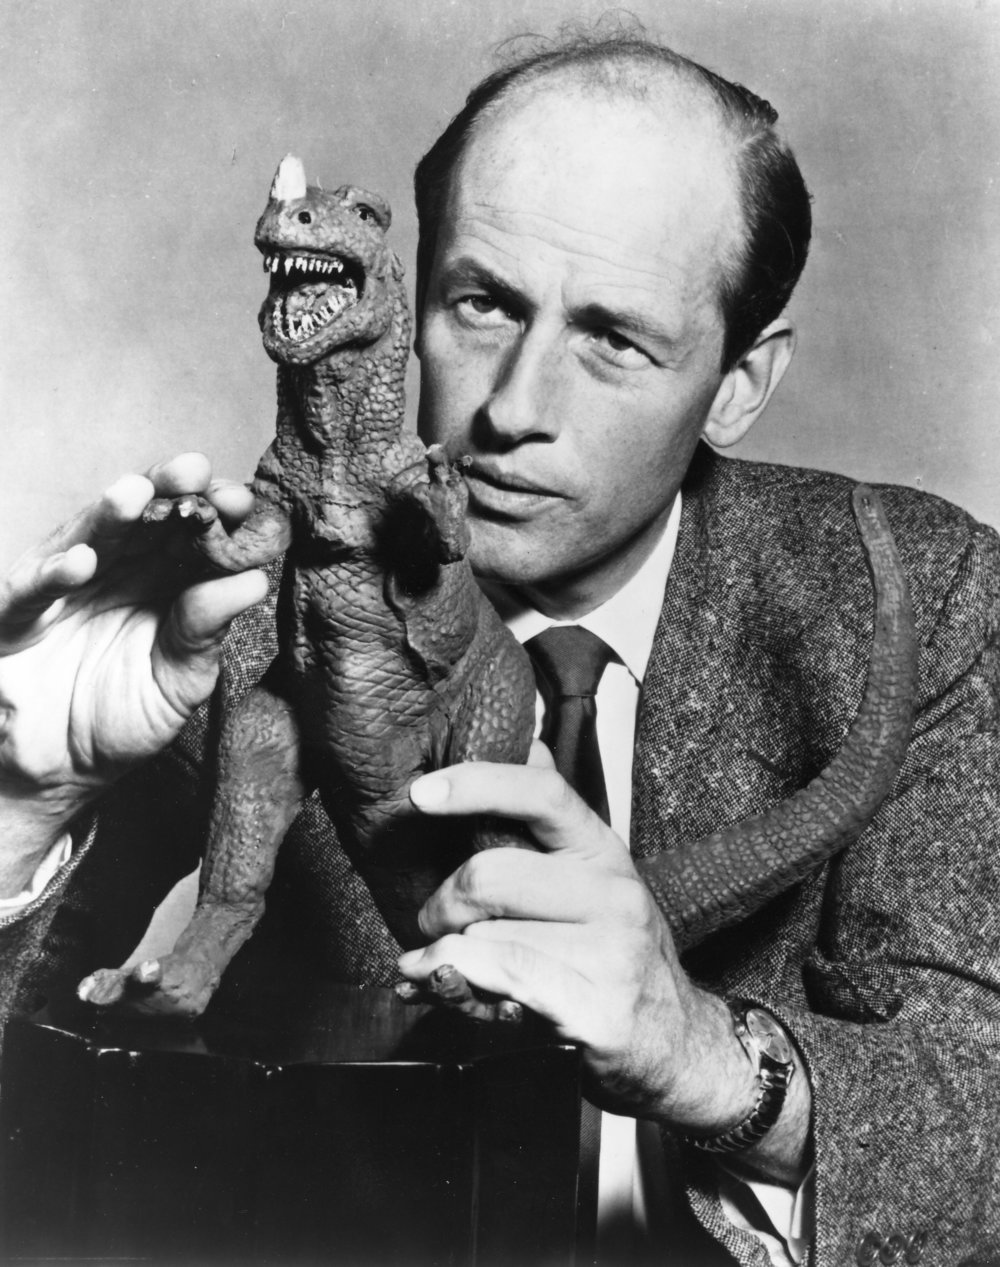 Ray Harryhausen models one of the stars of the show, the Ceratosaurus.